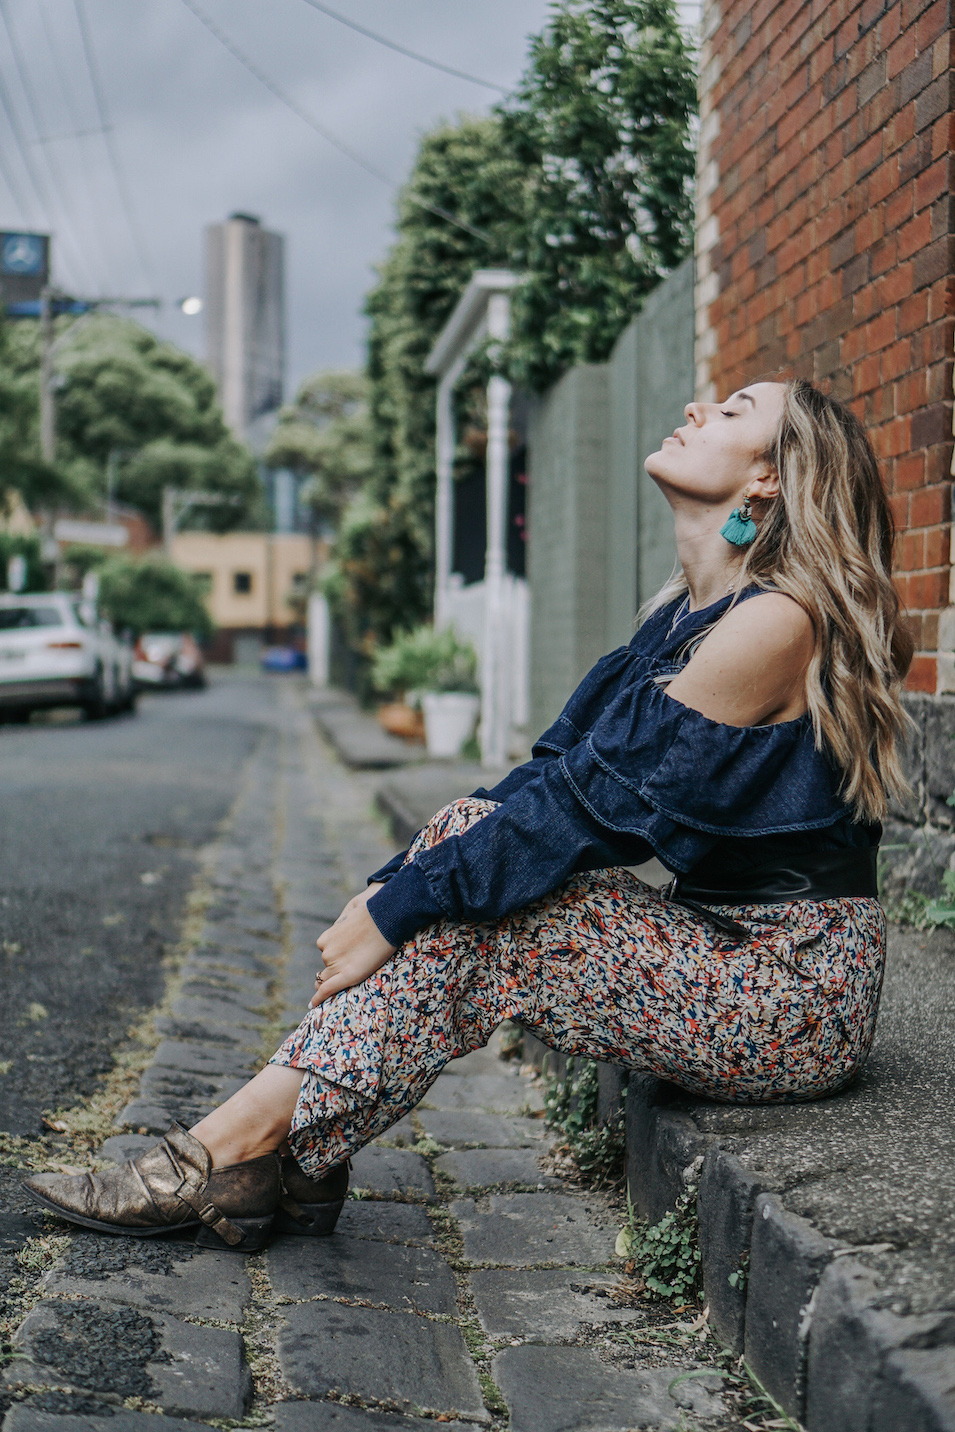 Denim and floral outfit // A Week Of Uncompromising Sustainable Style With Sonia Kessler From Native Styling on The Good Trade